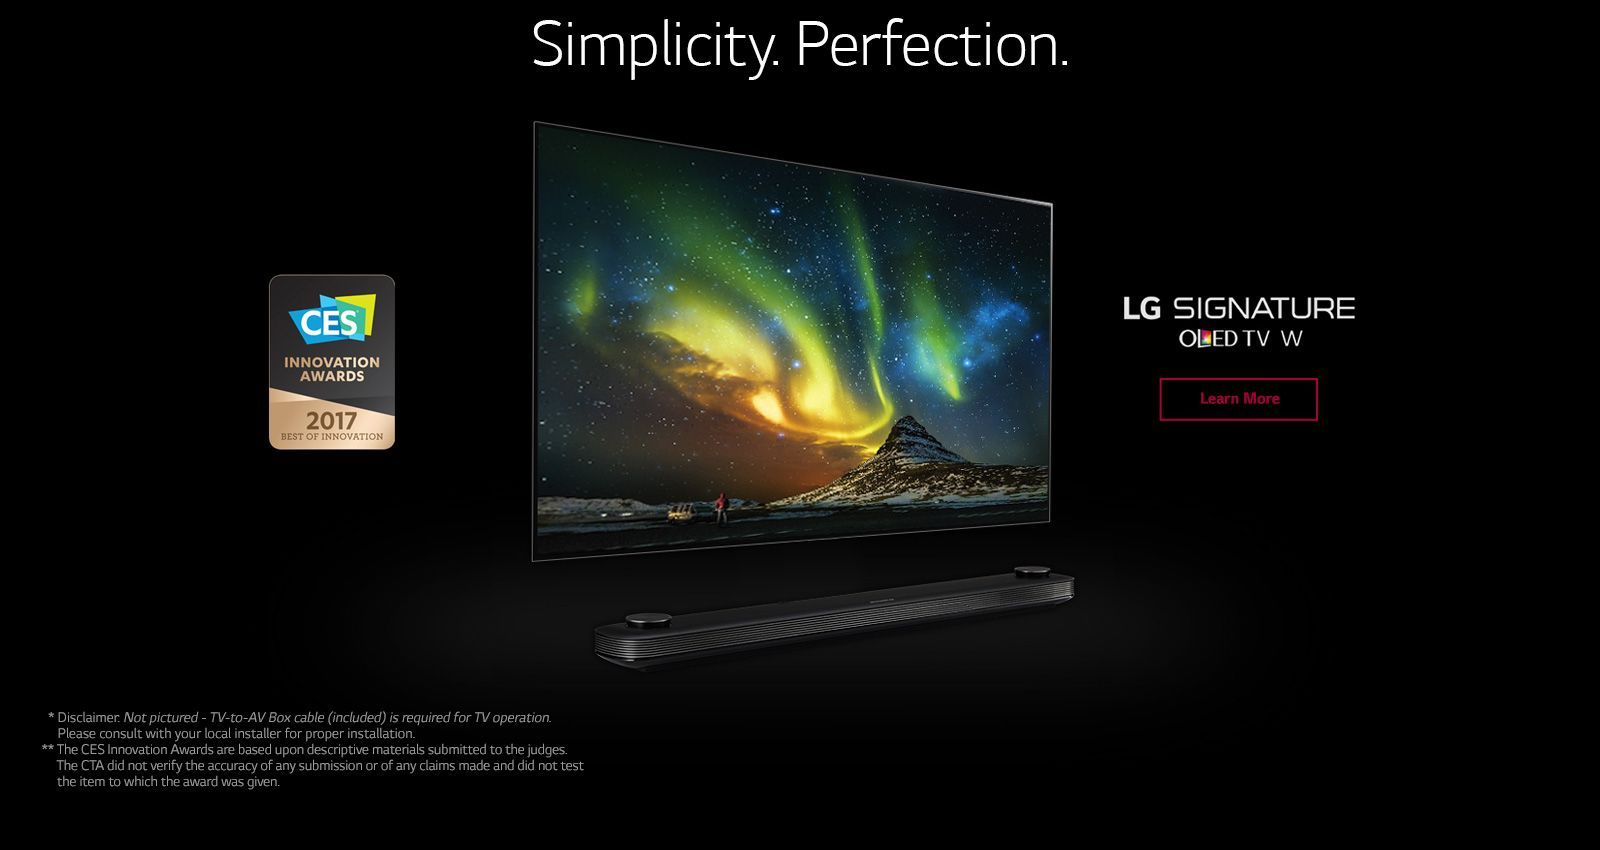 OLED TV: Discover LG's Curved & Flat OLED TVs | LG USA | Curved TVs